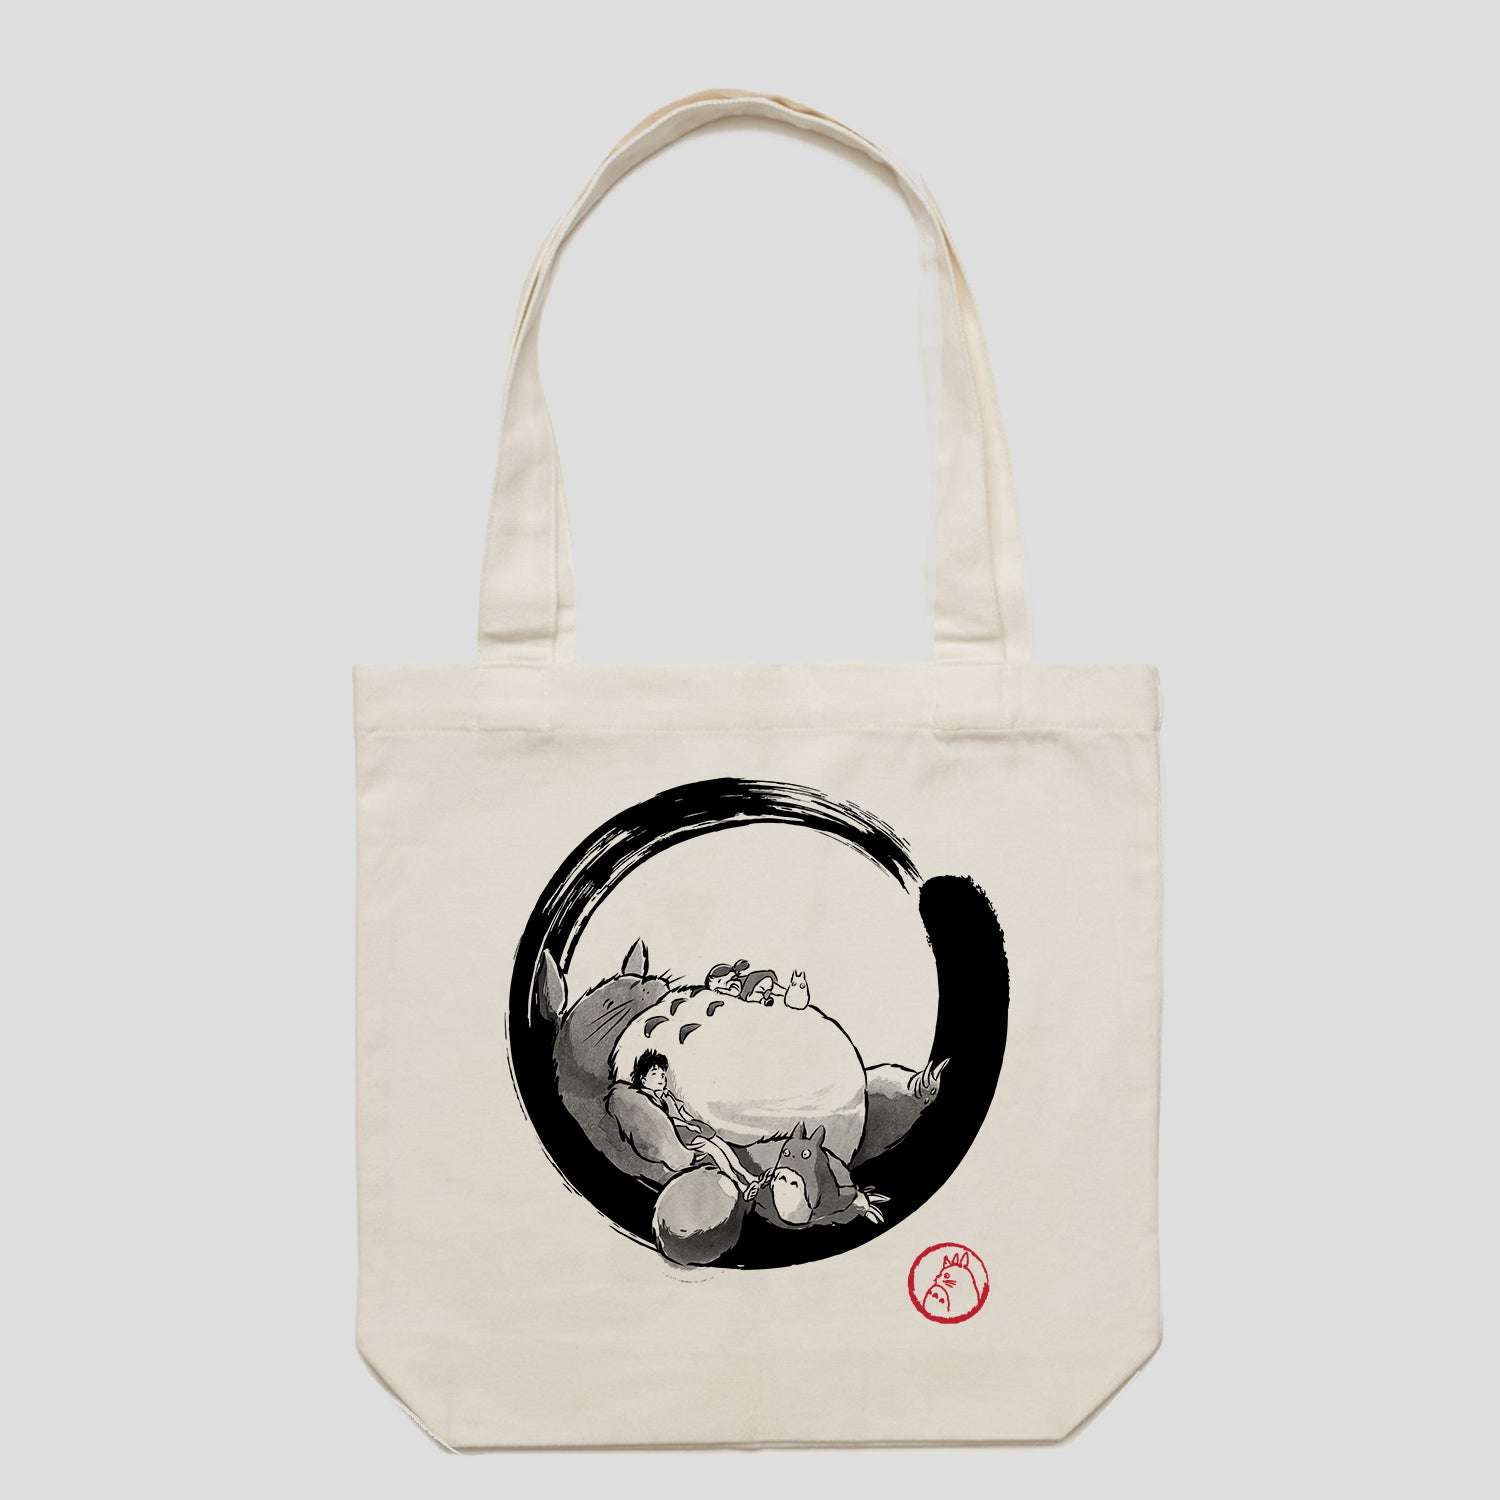 My Neighbor Totoro Anime Tote Bag Australia